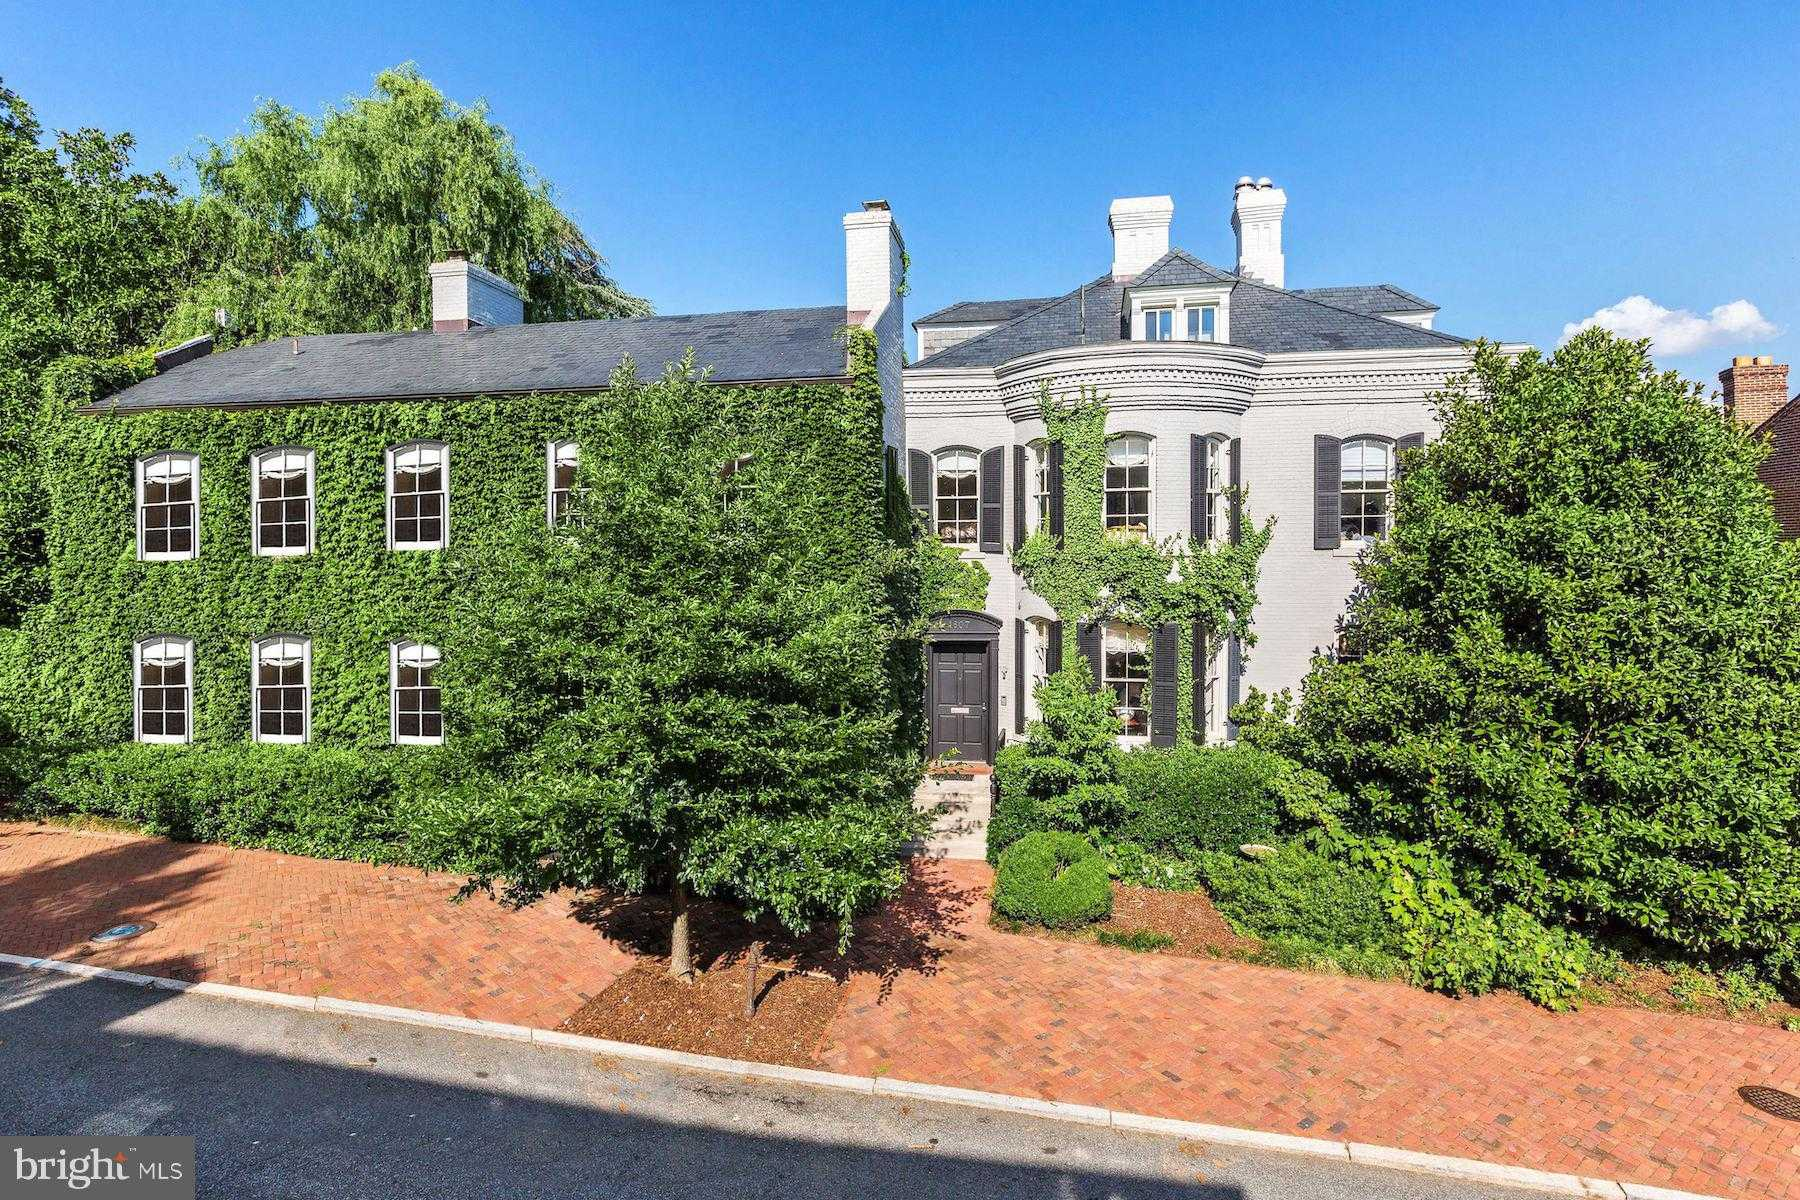 $18,000,000 - 8Br/11Ba -  for Sale in Georgetown, Washington